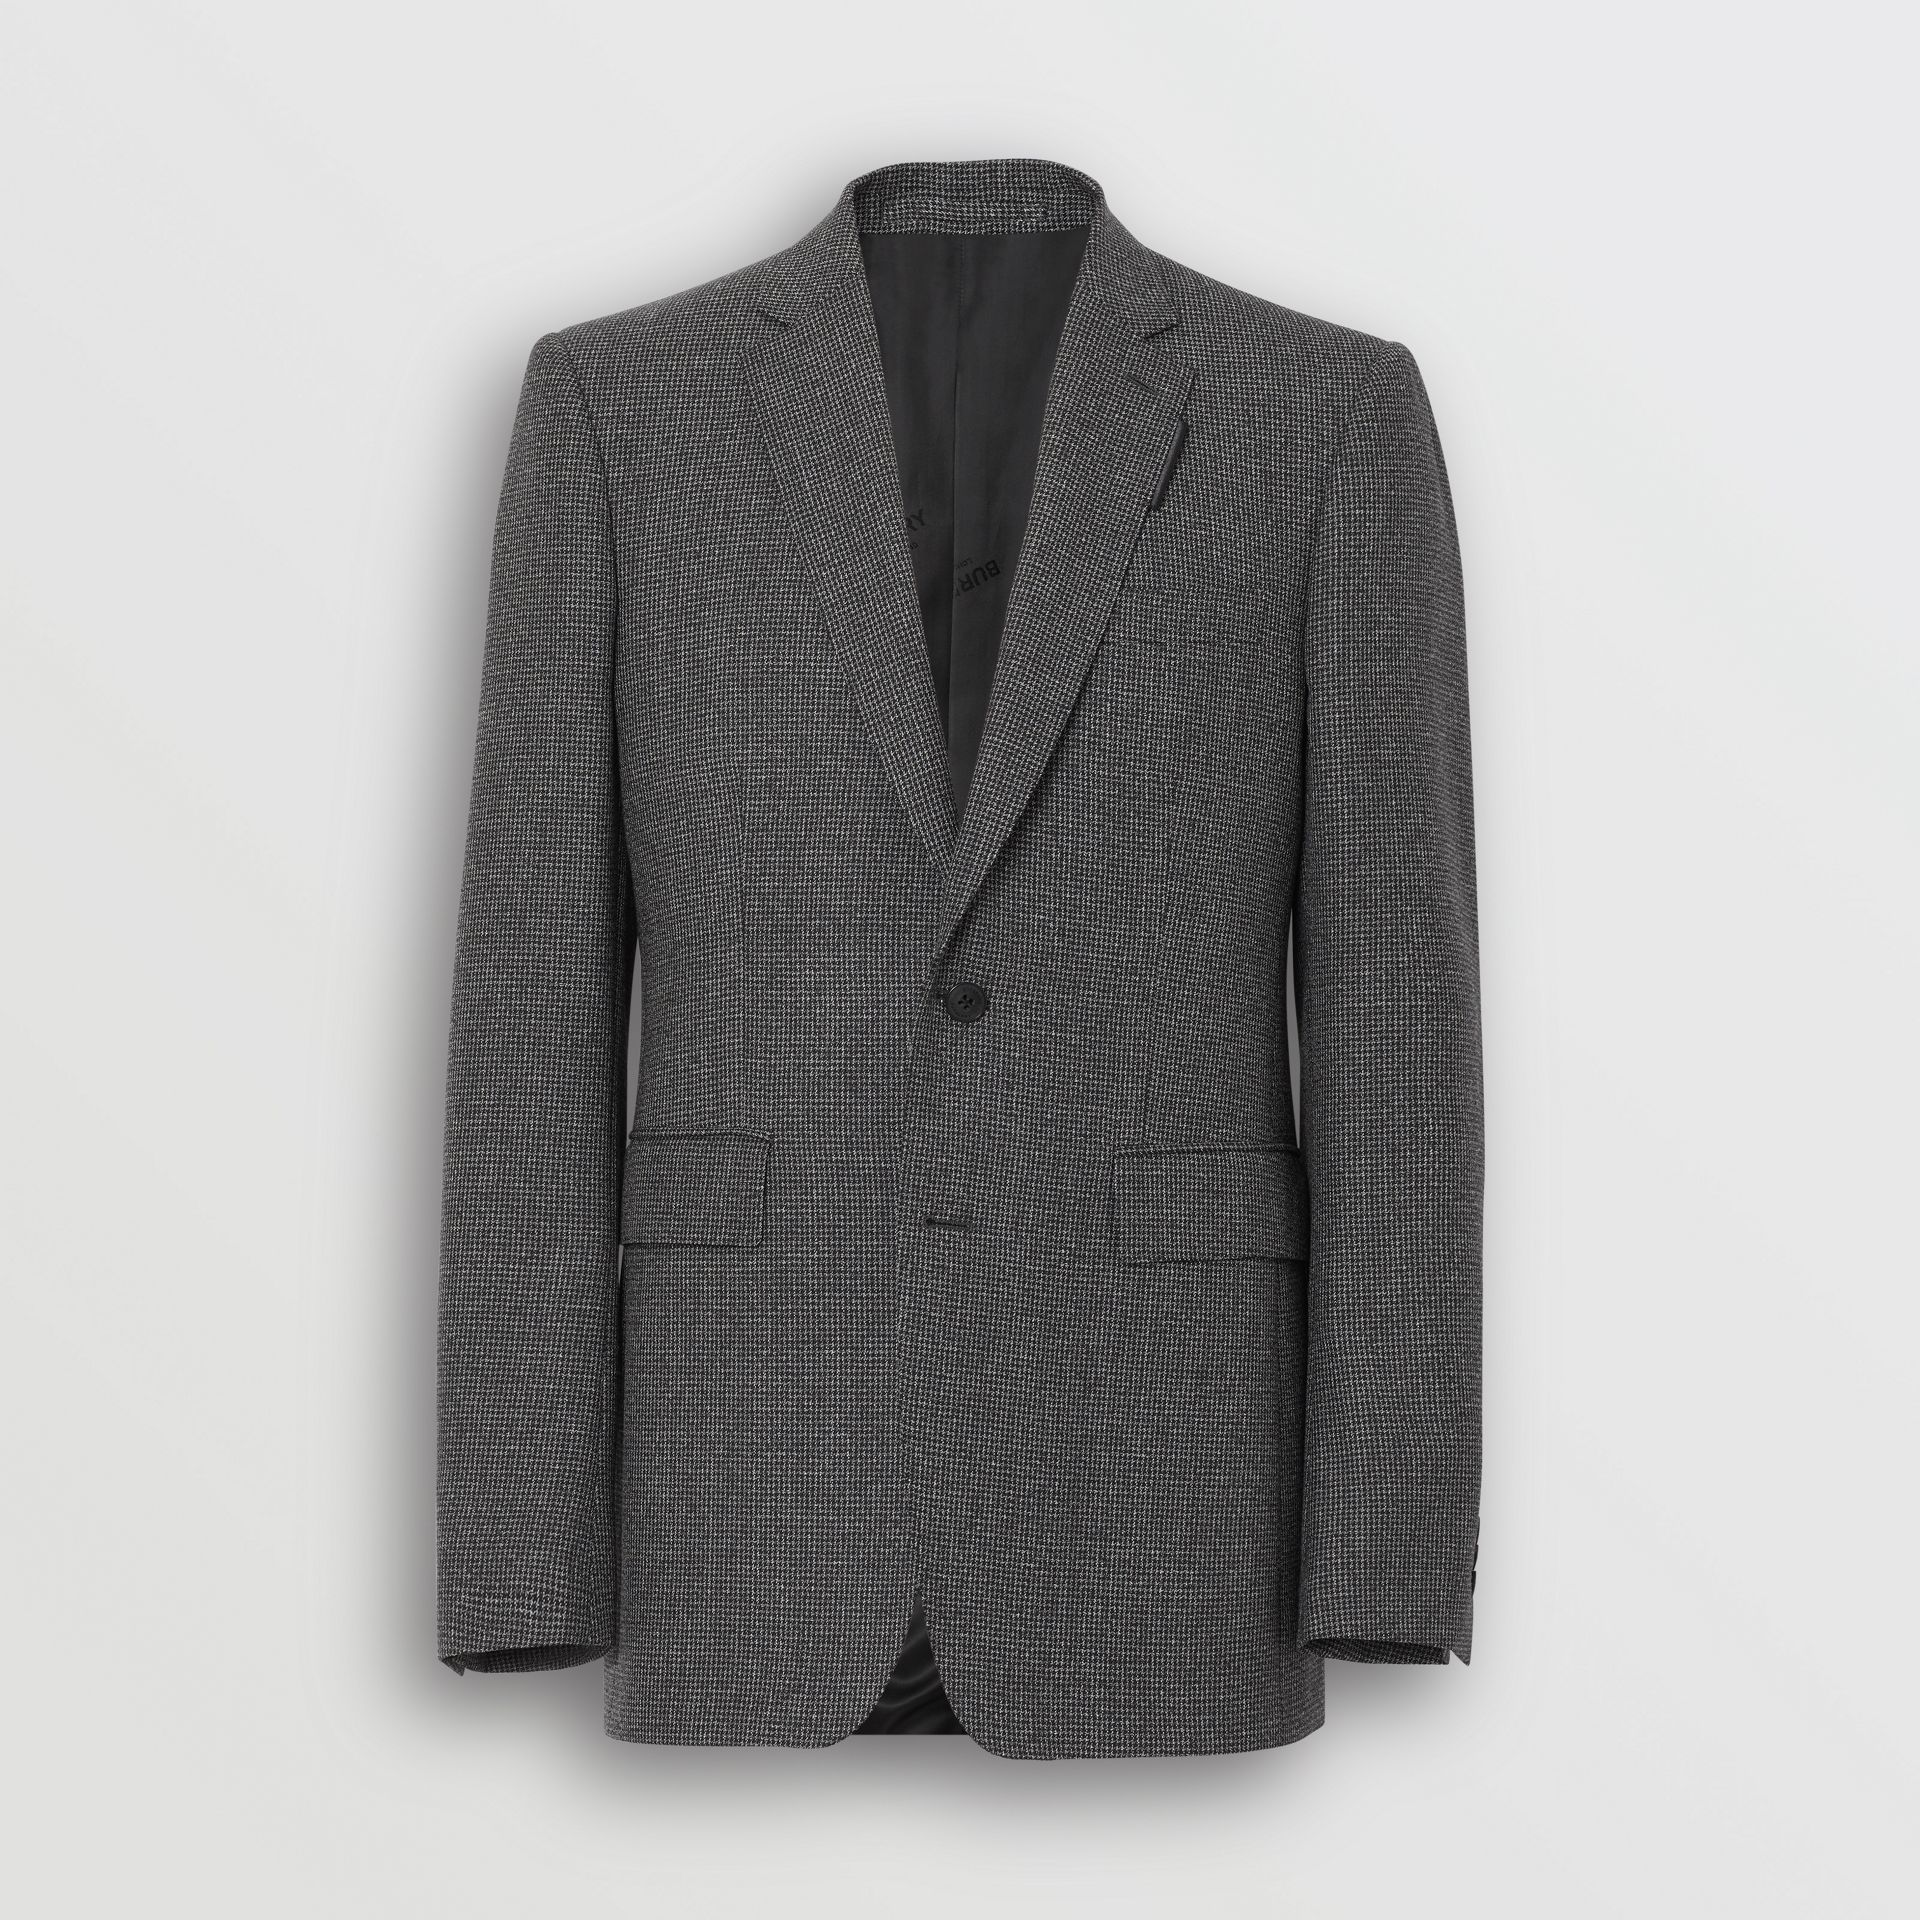 English Fit Puppytooth Check Wool Suit in Charcoal Melange - Men | Burberry - gallery image 2